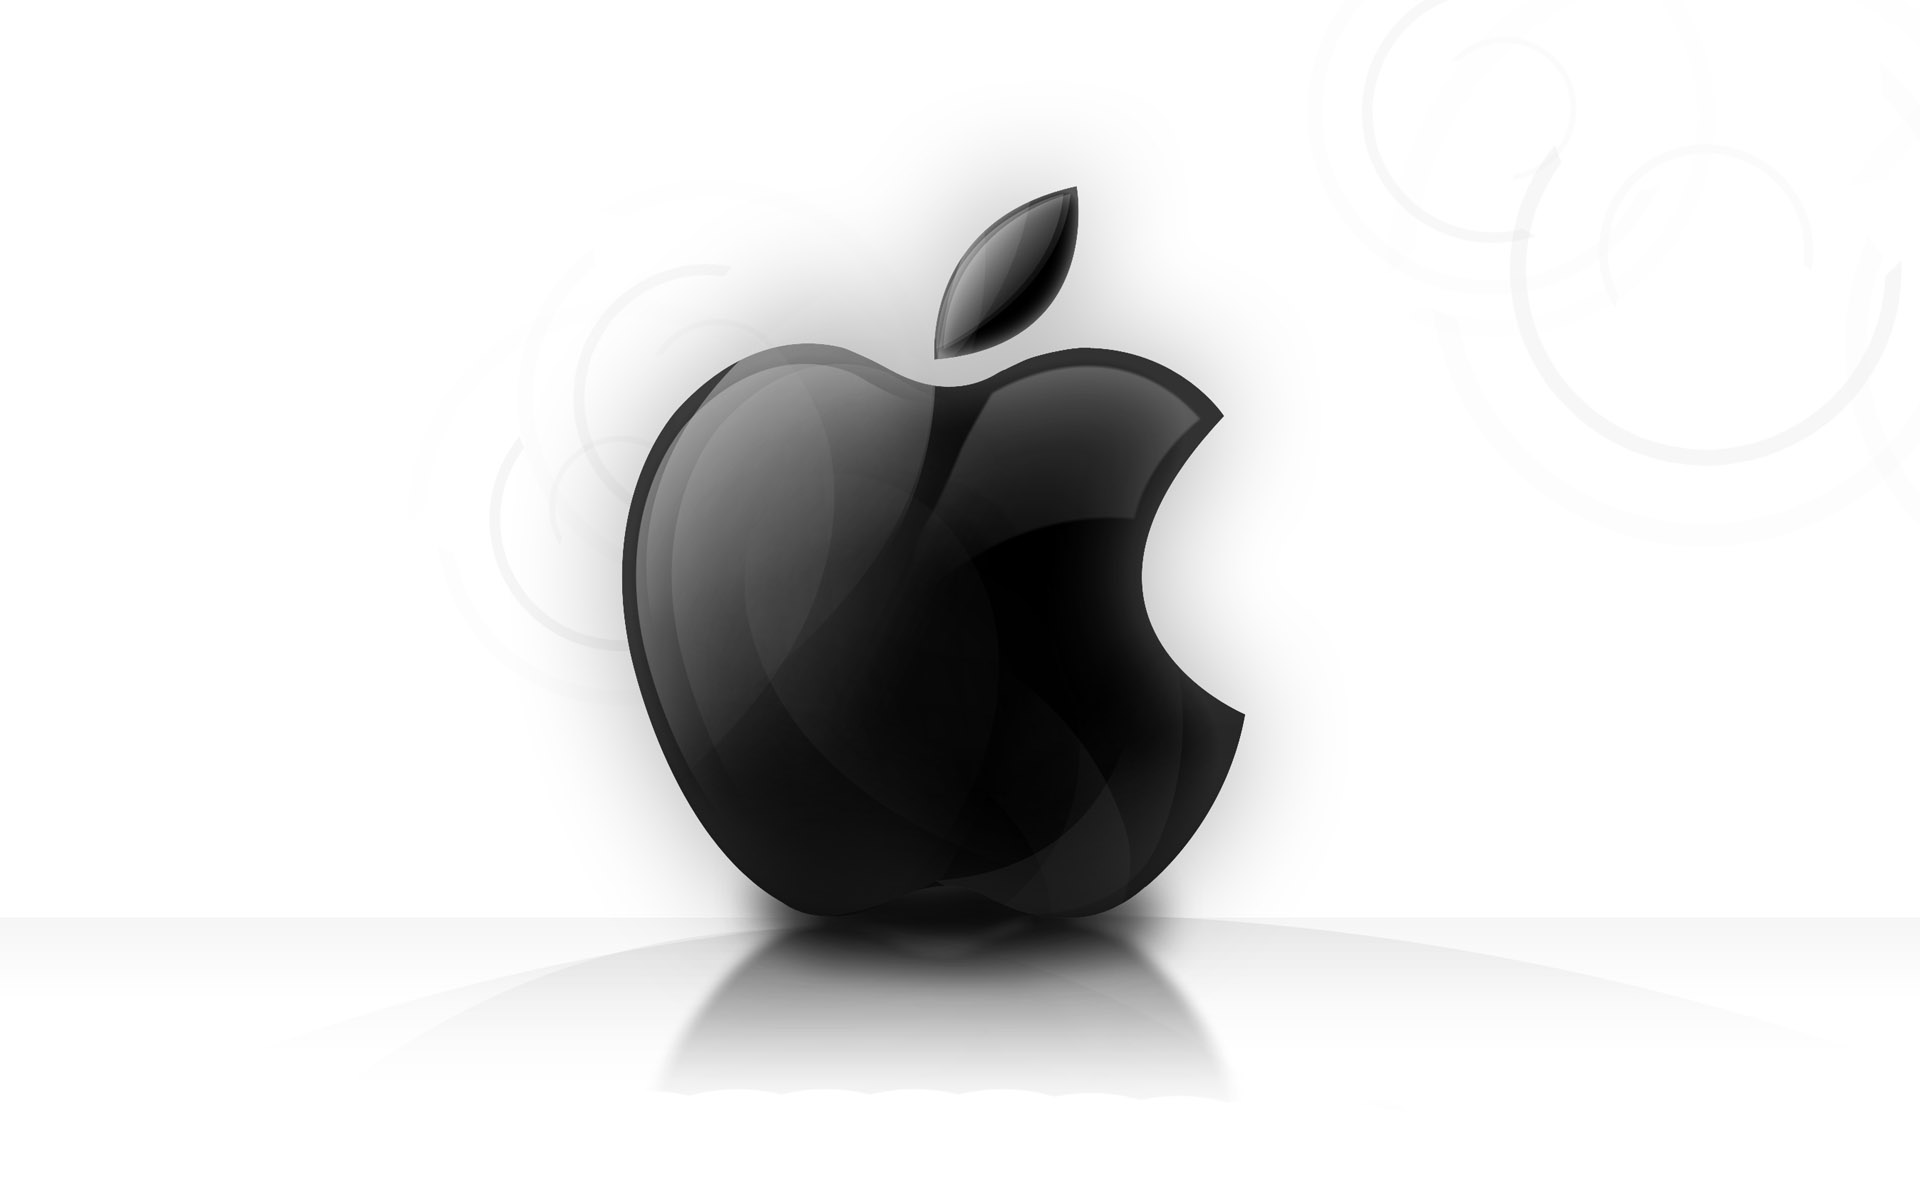 Apple HD Wallpapers | Apple Logo Desktop Backgrounds - Page 3